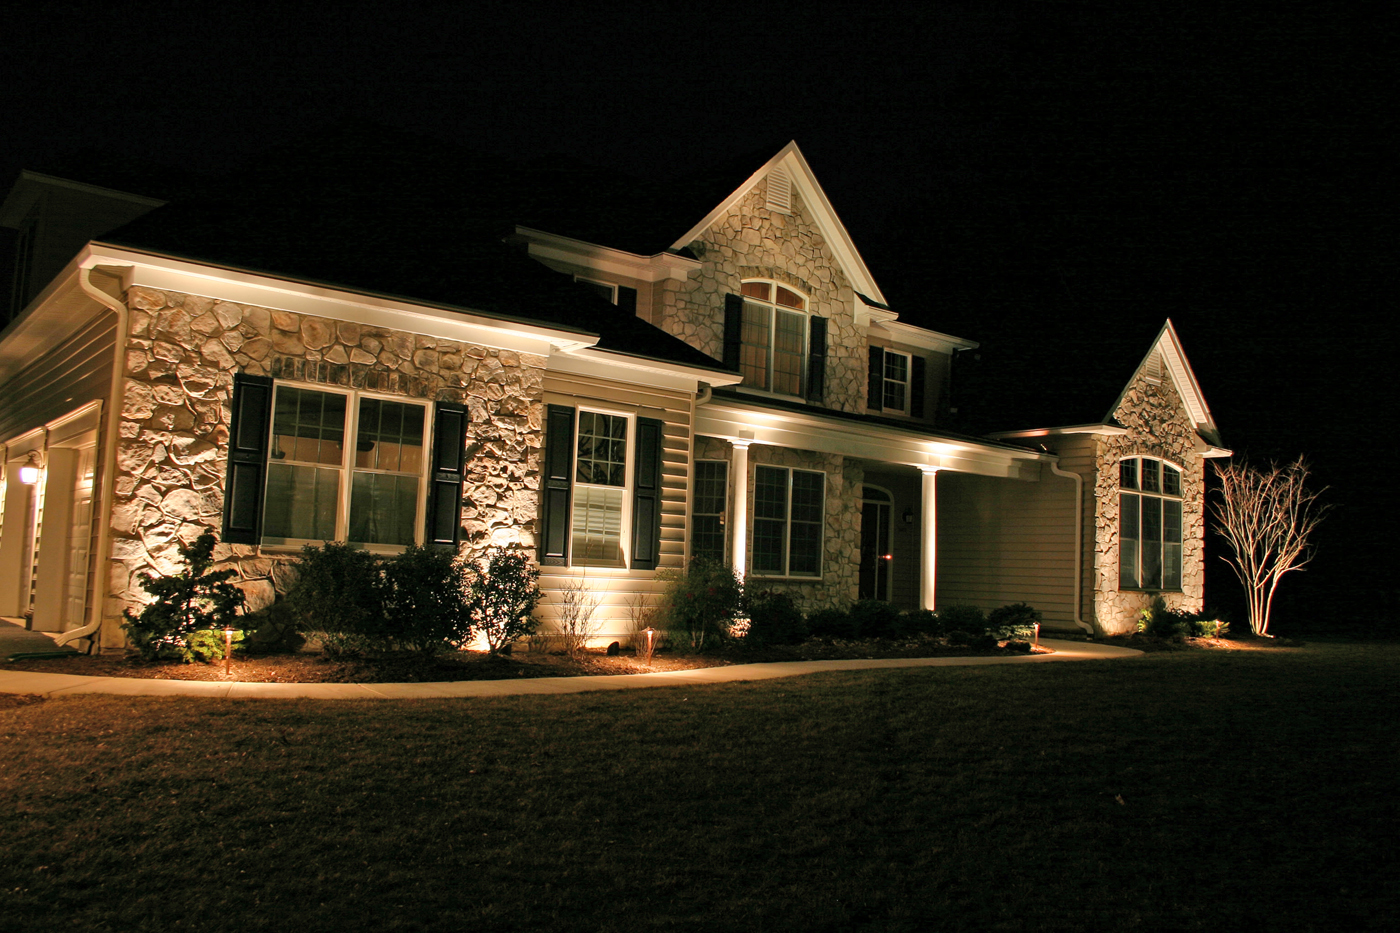 Top 5 outdoor lighting effects for minneapolis homes and minneapolis wall washing mozeypictures Choice Image